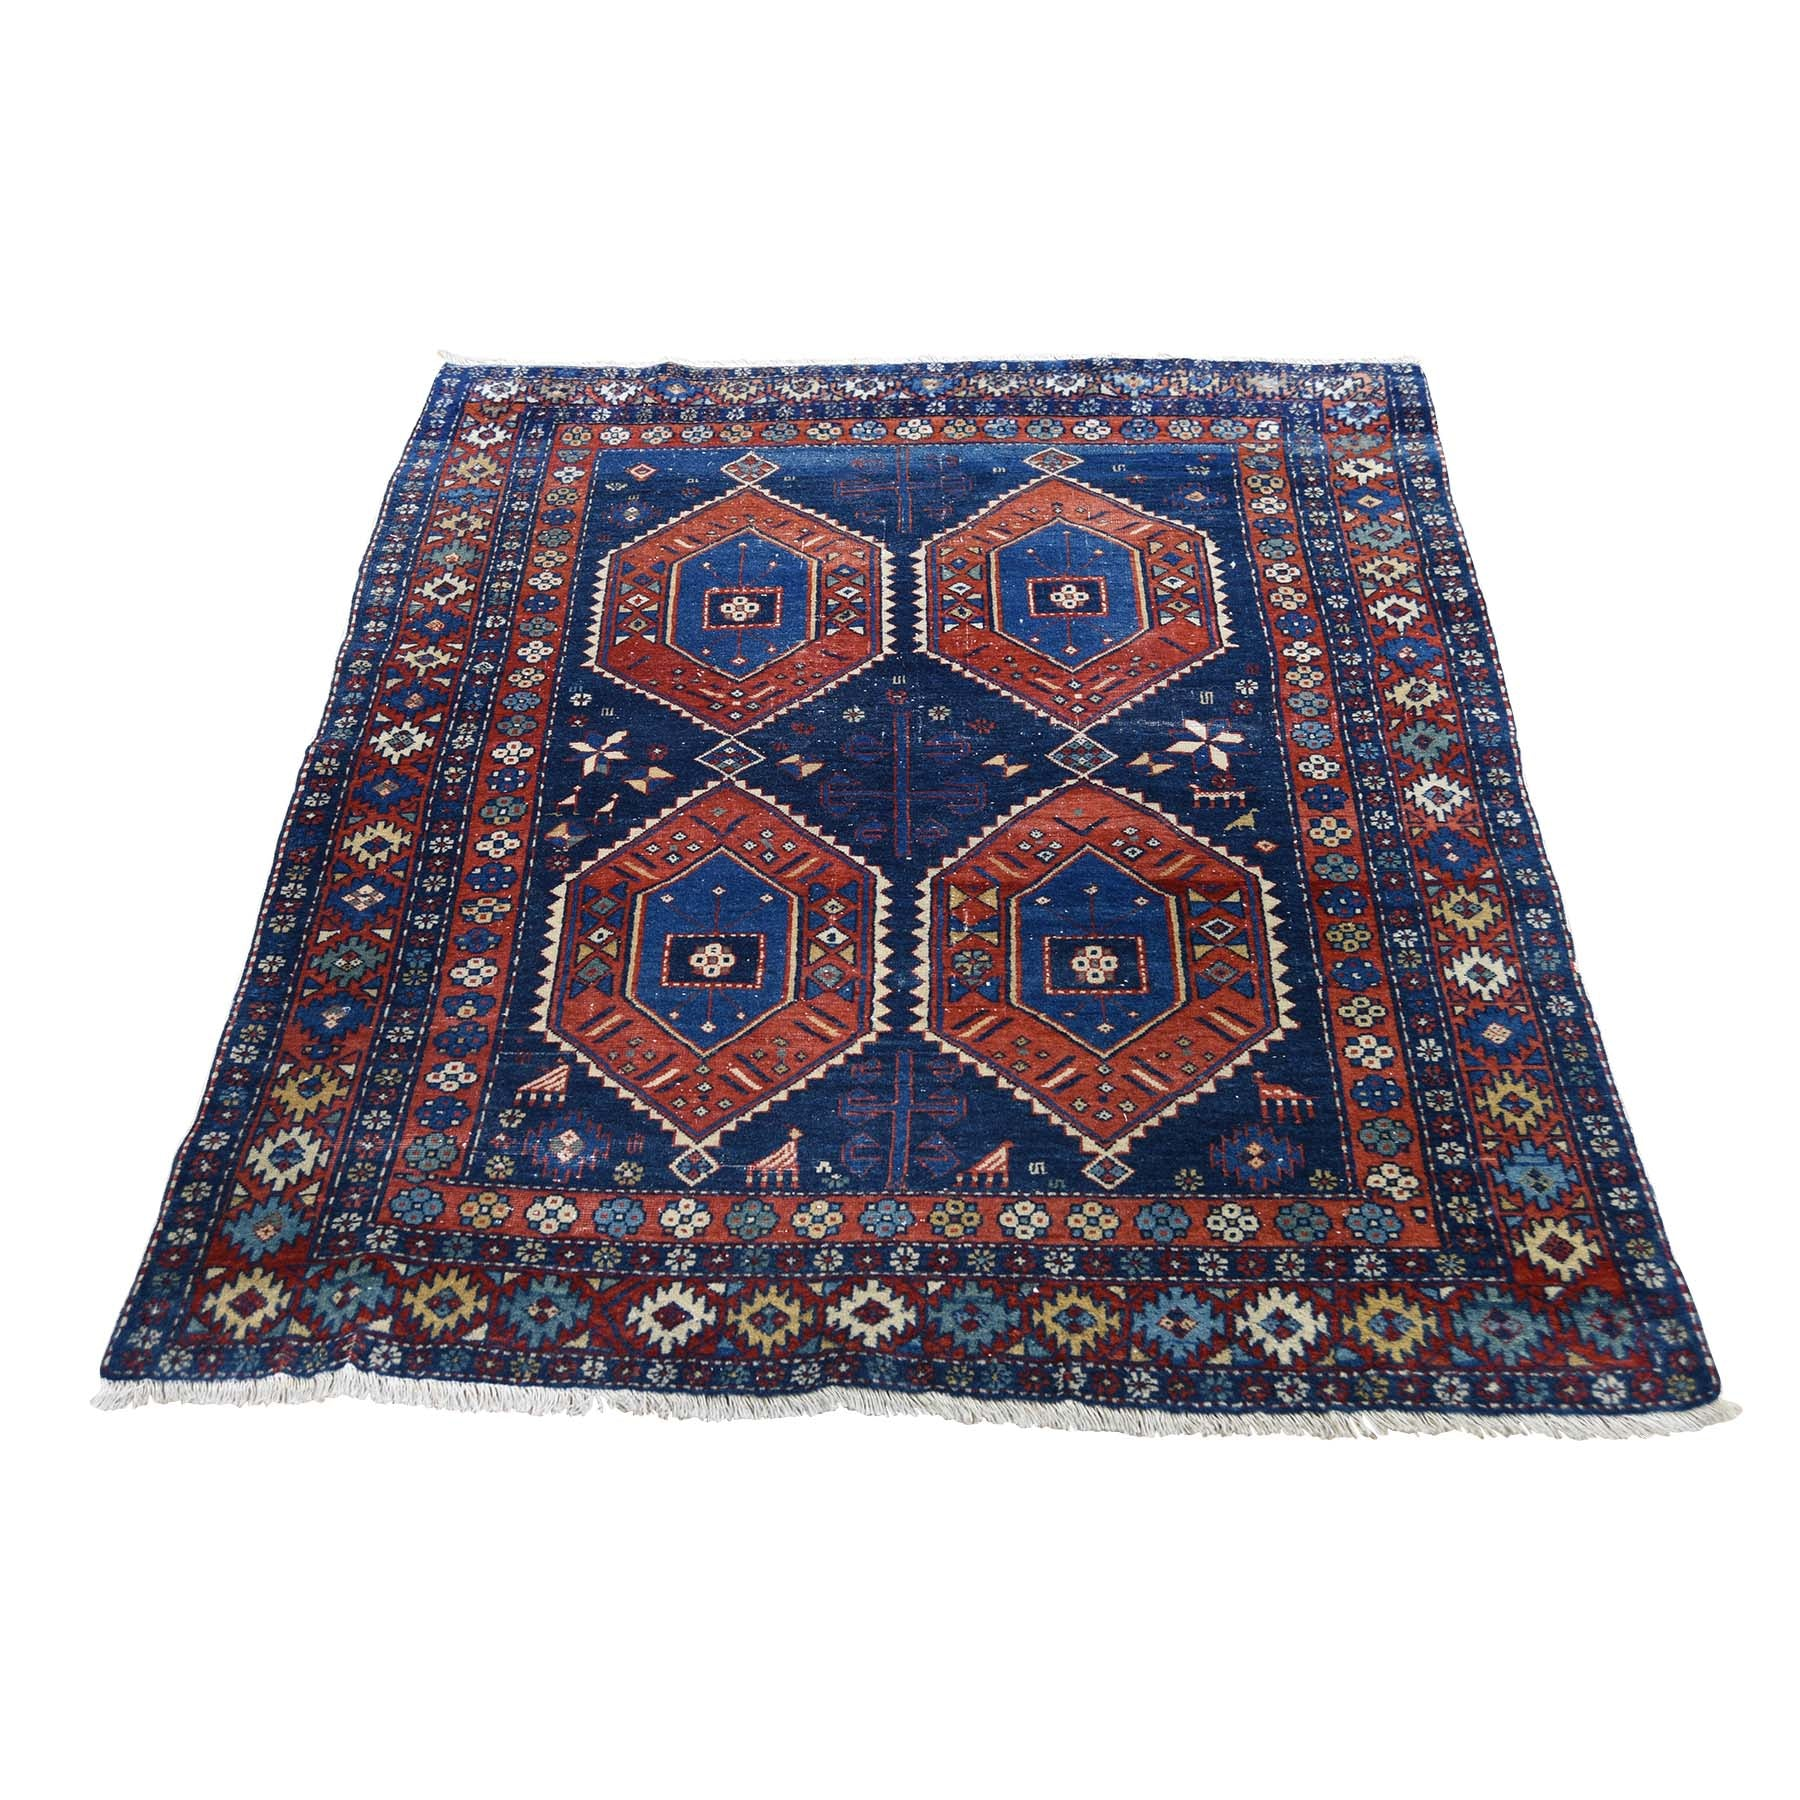 "Handmade Antique Rectangle Rug > Design# SH45470 > Size: 3'-6"" x 4'-6"" [ONLINE ONLY]"